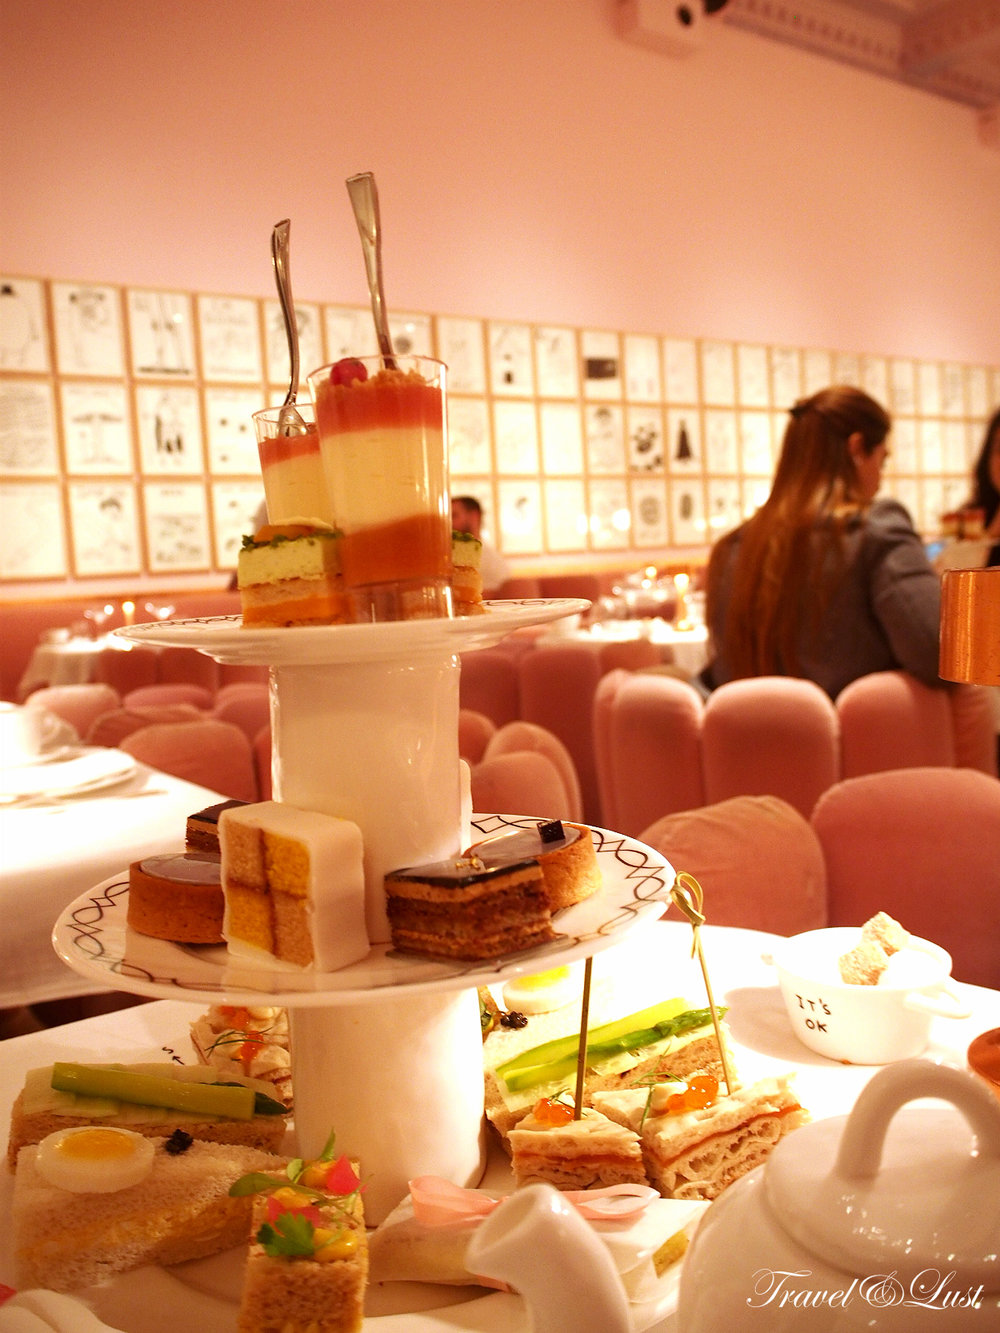 sketch - Afternoon Tea, £45 per person |Champagne Afternoon Tea, £57 per person |Children's Afternoon Tea, £27 per child - including Pat the Bear